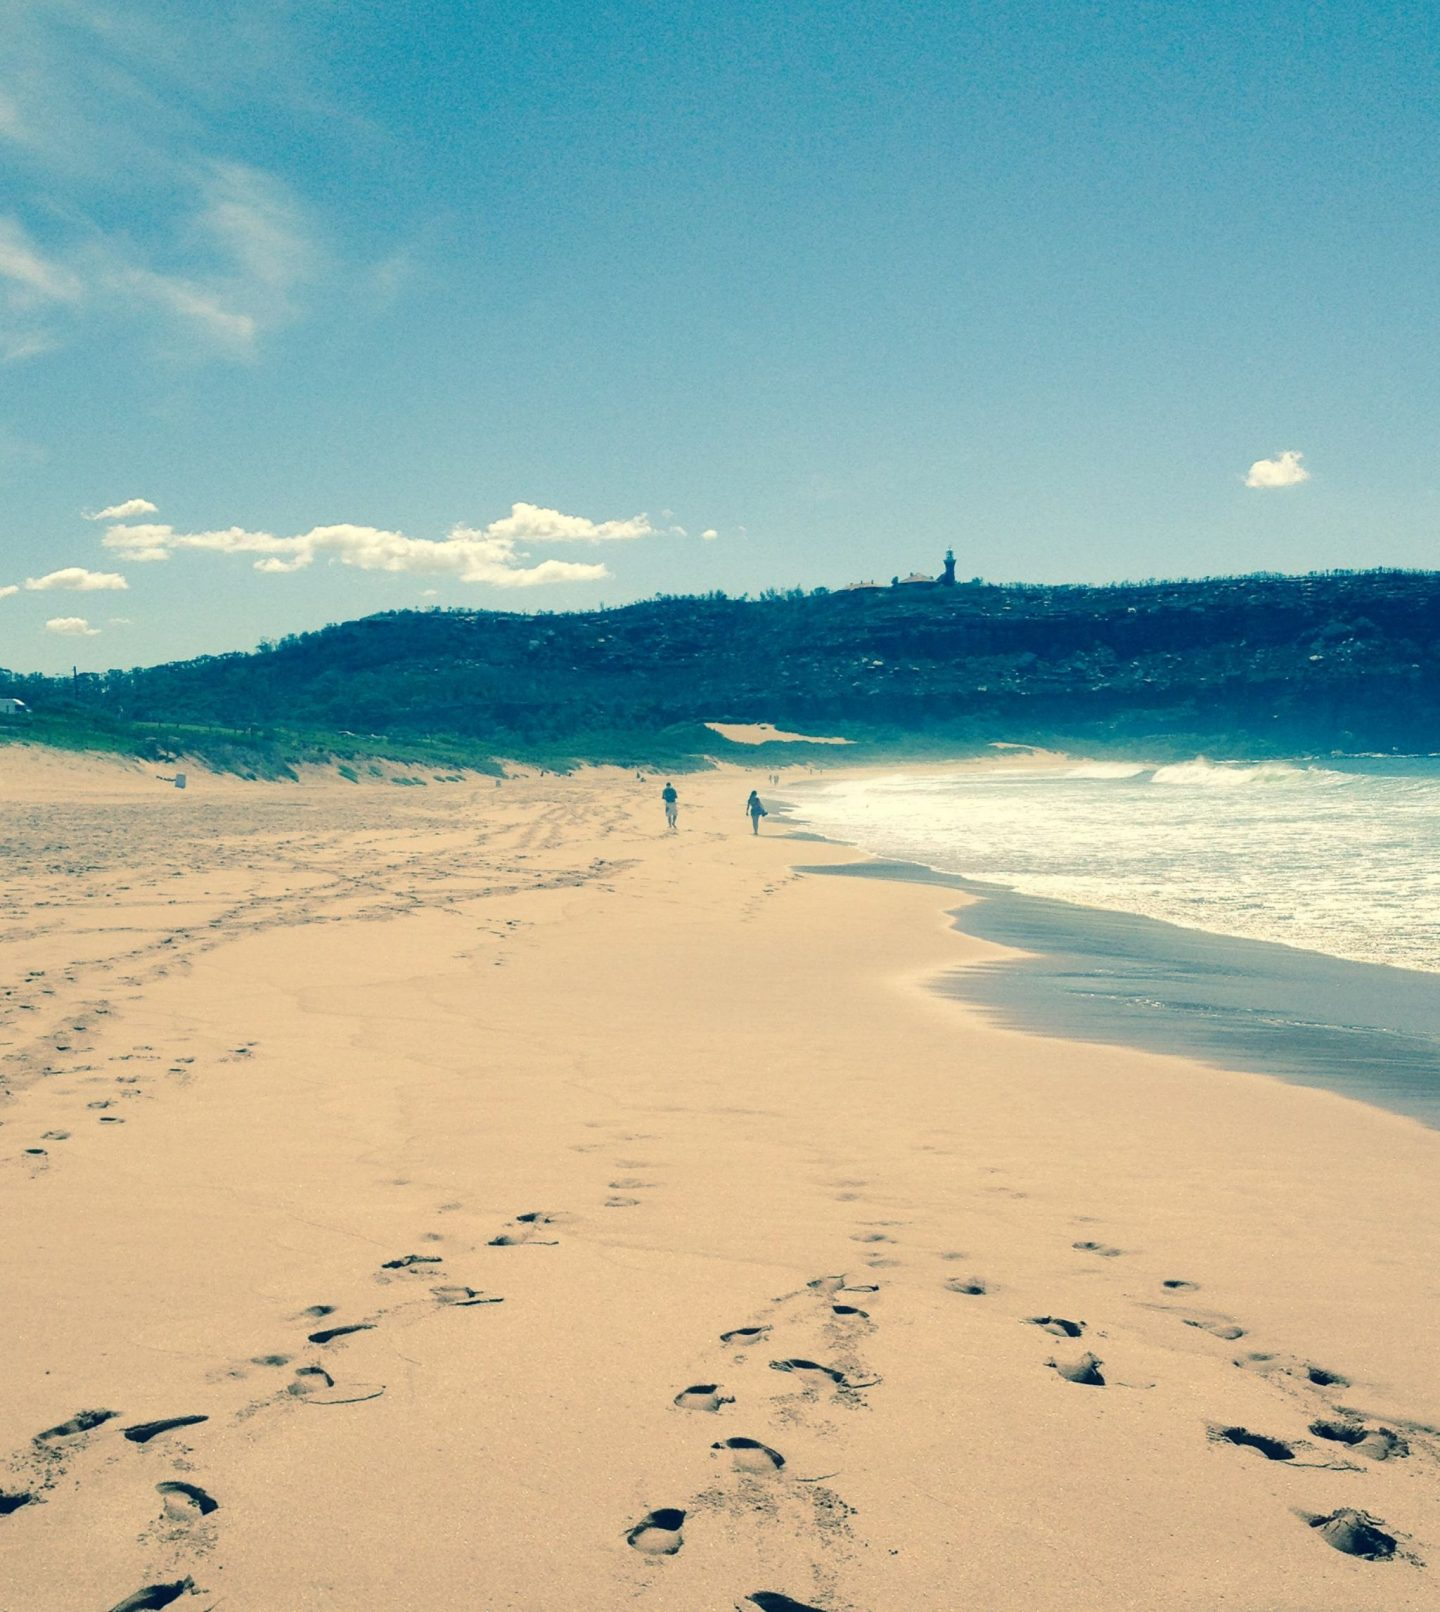 Barrenjoey on the beach